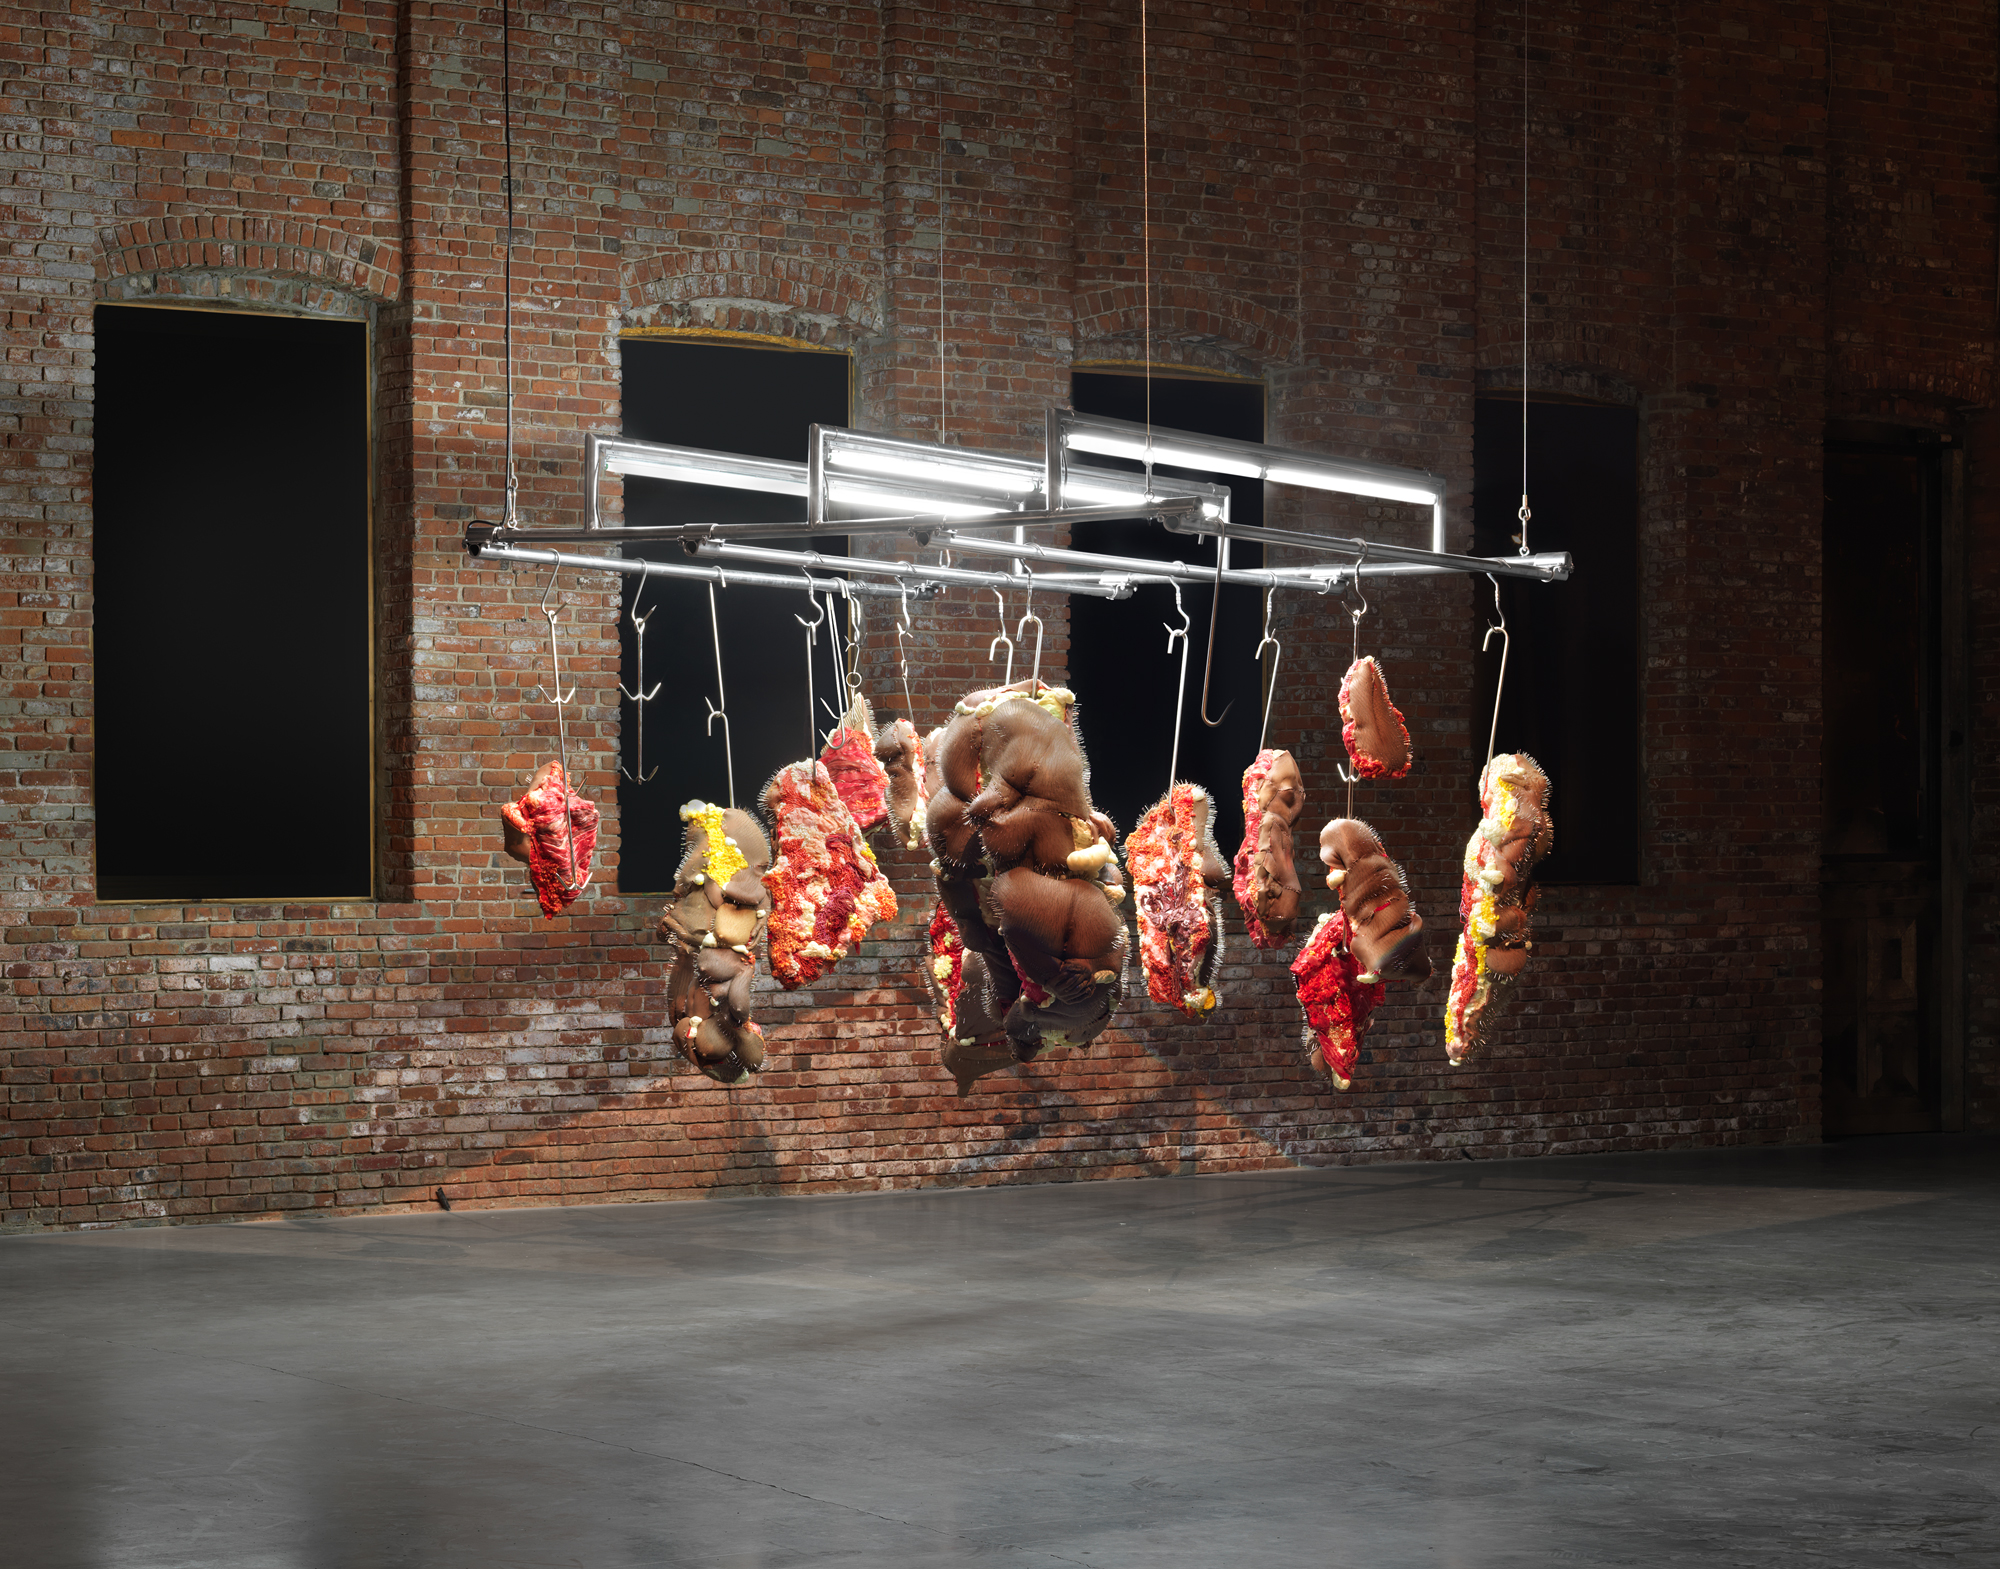 Doreen Garner Rack of those Ravaged and Unconsenting, 2017 Silicone, insulation foam, glass beads, fiberglass insulation, steel meat hooks, steel pins, pearls, 96 x 96 x 96 inches